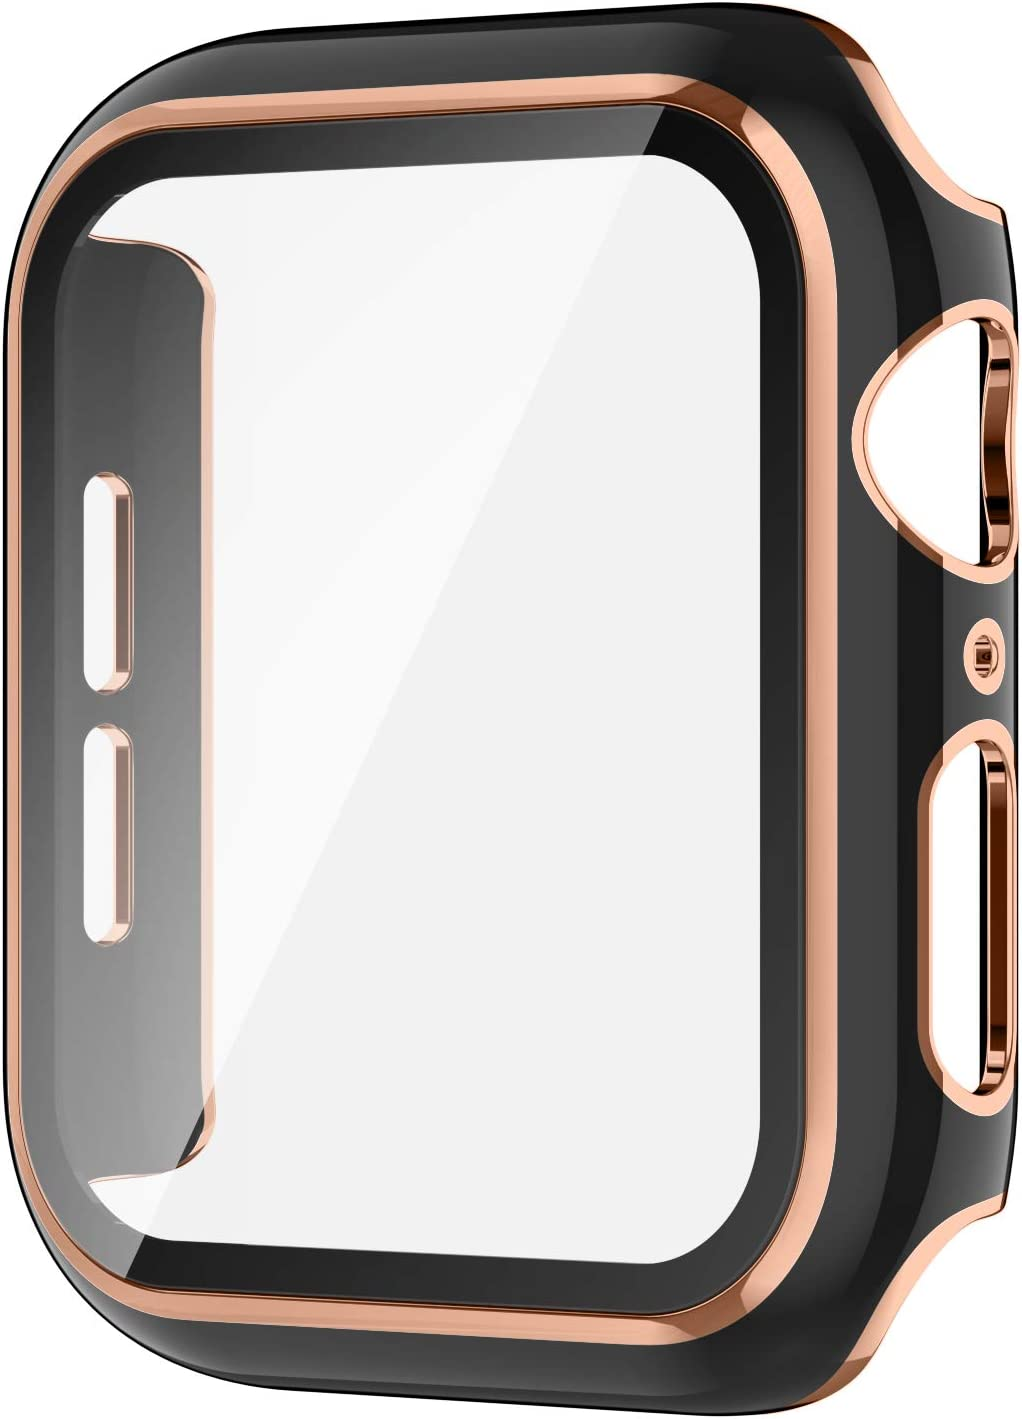 AVIDDA Case Compatible Apple Watch 38mm Built-in Tempered Glass Screen Protector, Rose Gold Edge Black Bumper Full Coverage HD Clear Protective Film Cover for Women Men iWatch 38mm Series 3/2/1